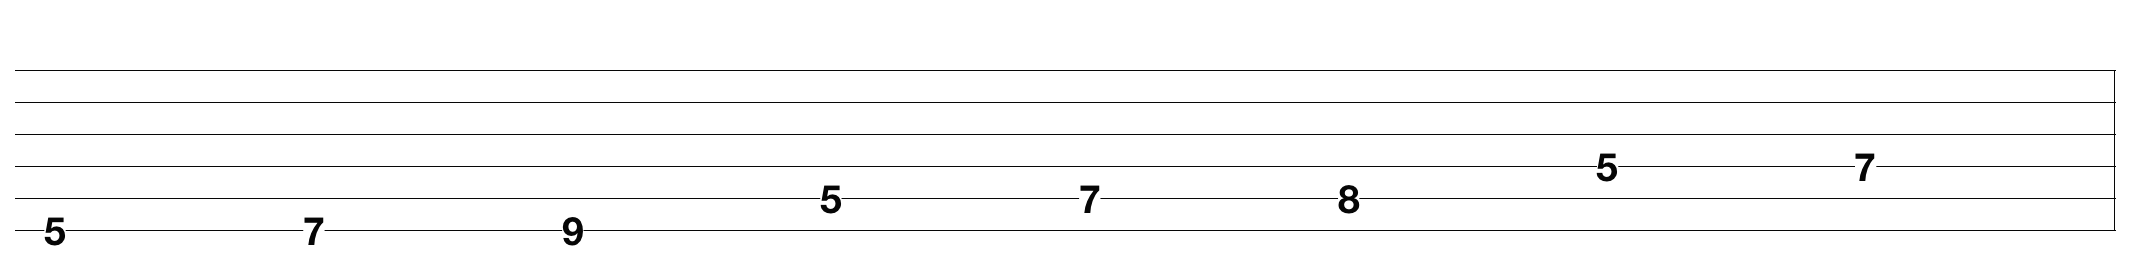 melodic-guitar-scales_5.png